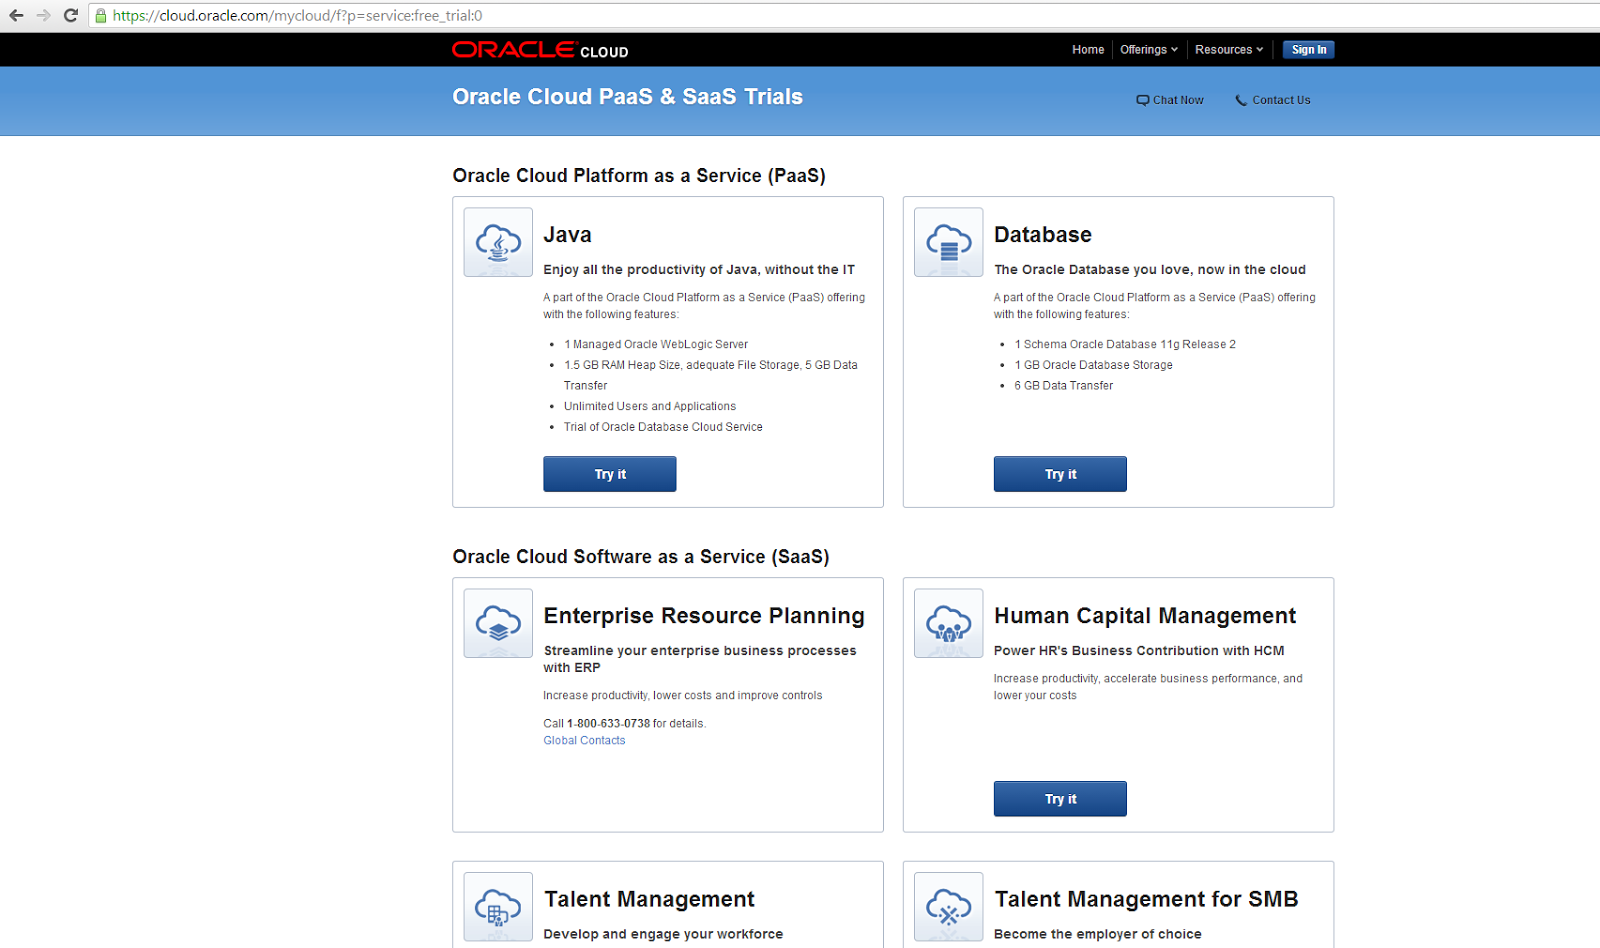 ... my experience with creating a trial account for the Oracle Java Cloud,  deploying a simple helloworld webservice and calling it from outside the  cloud.